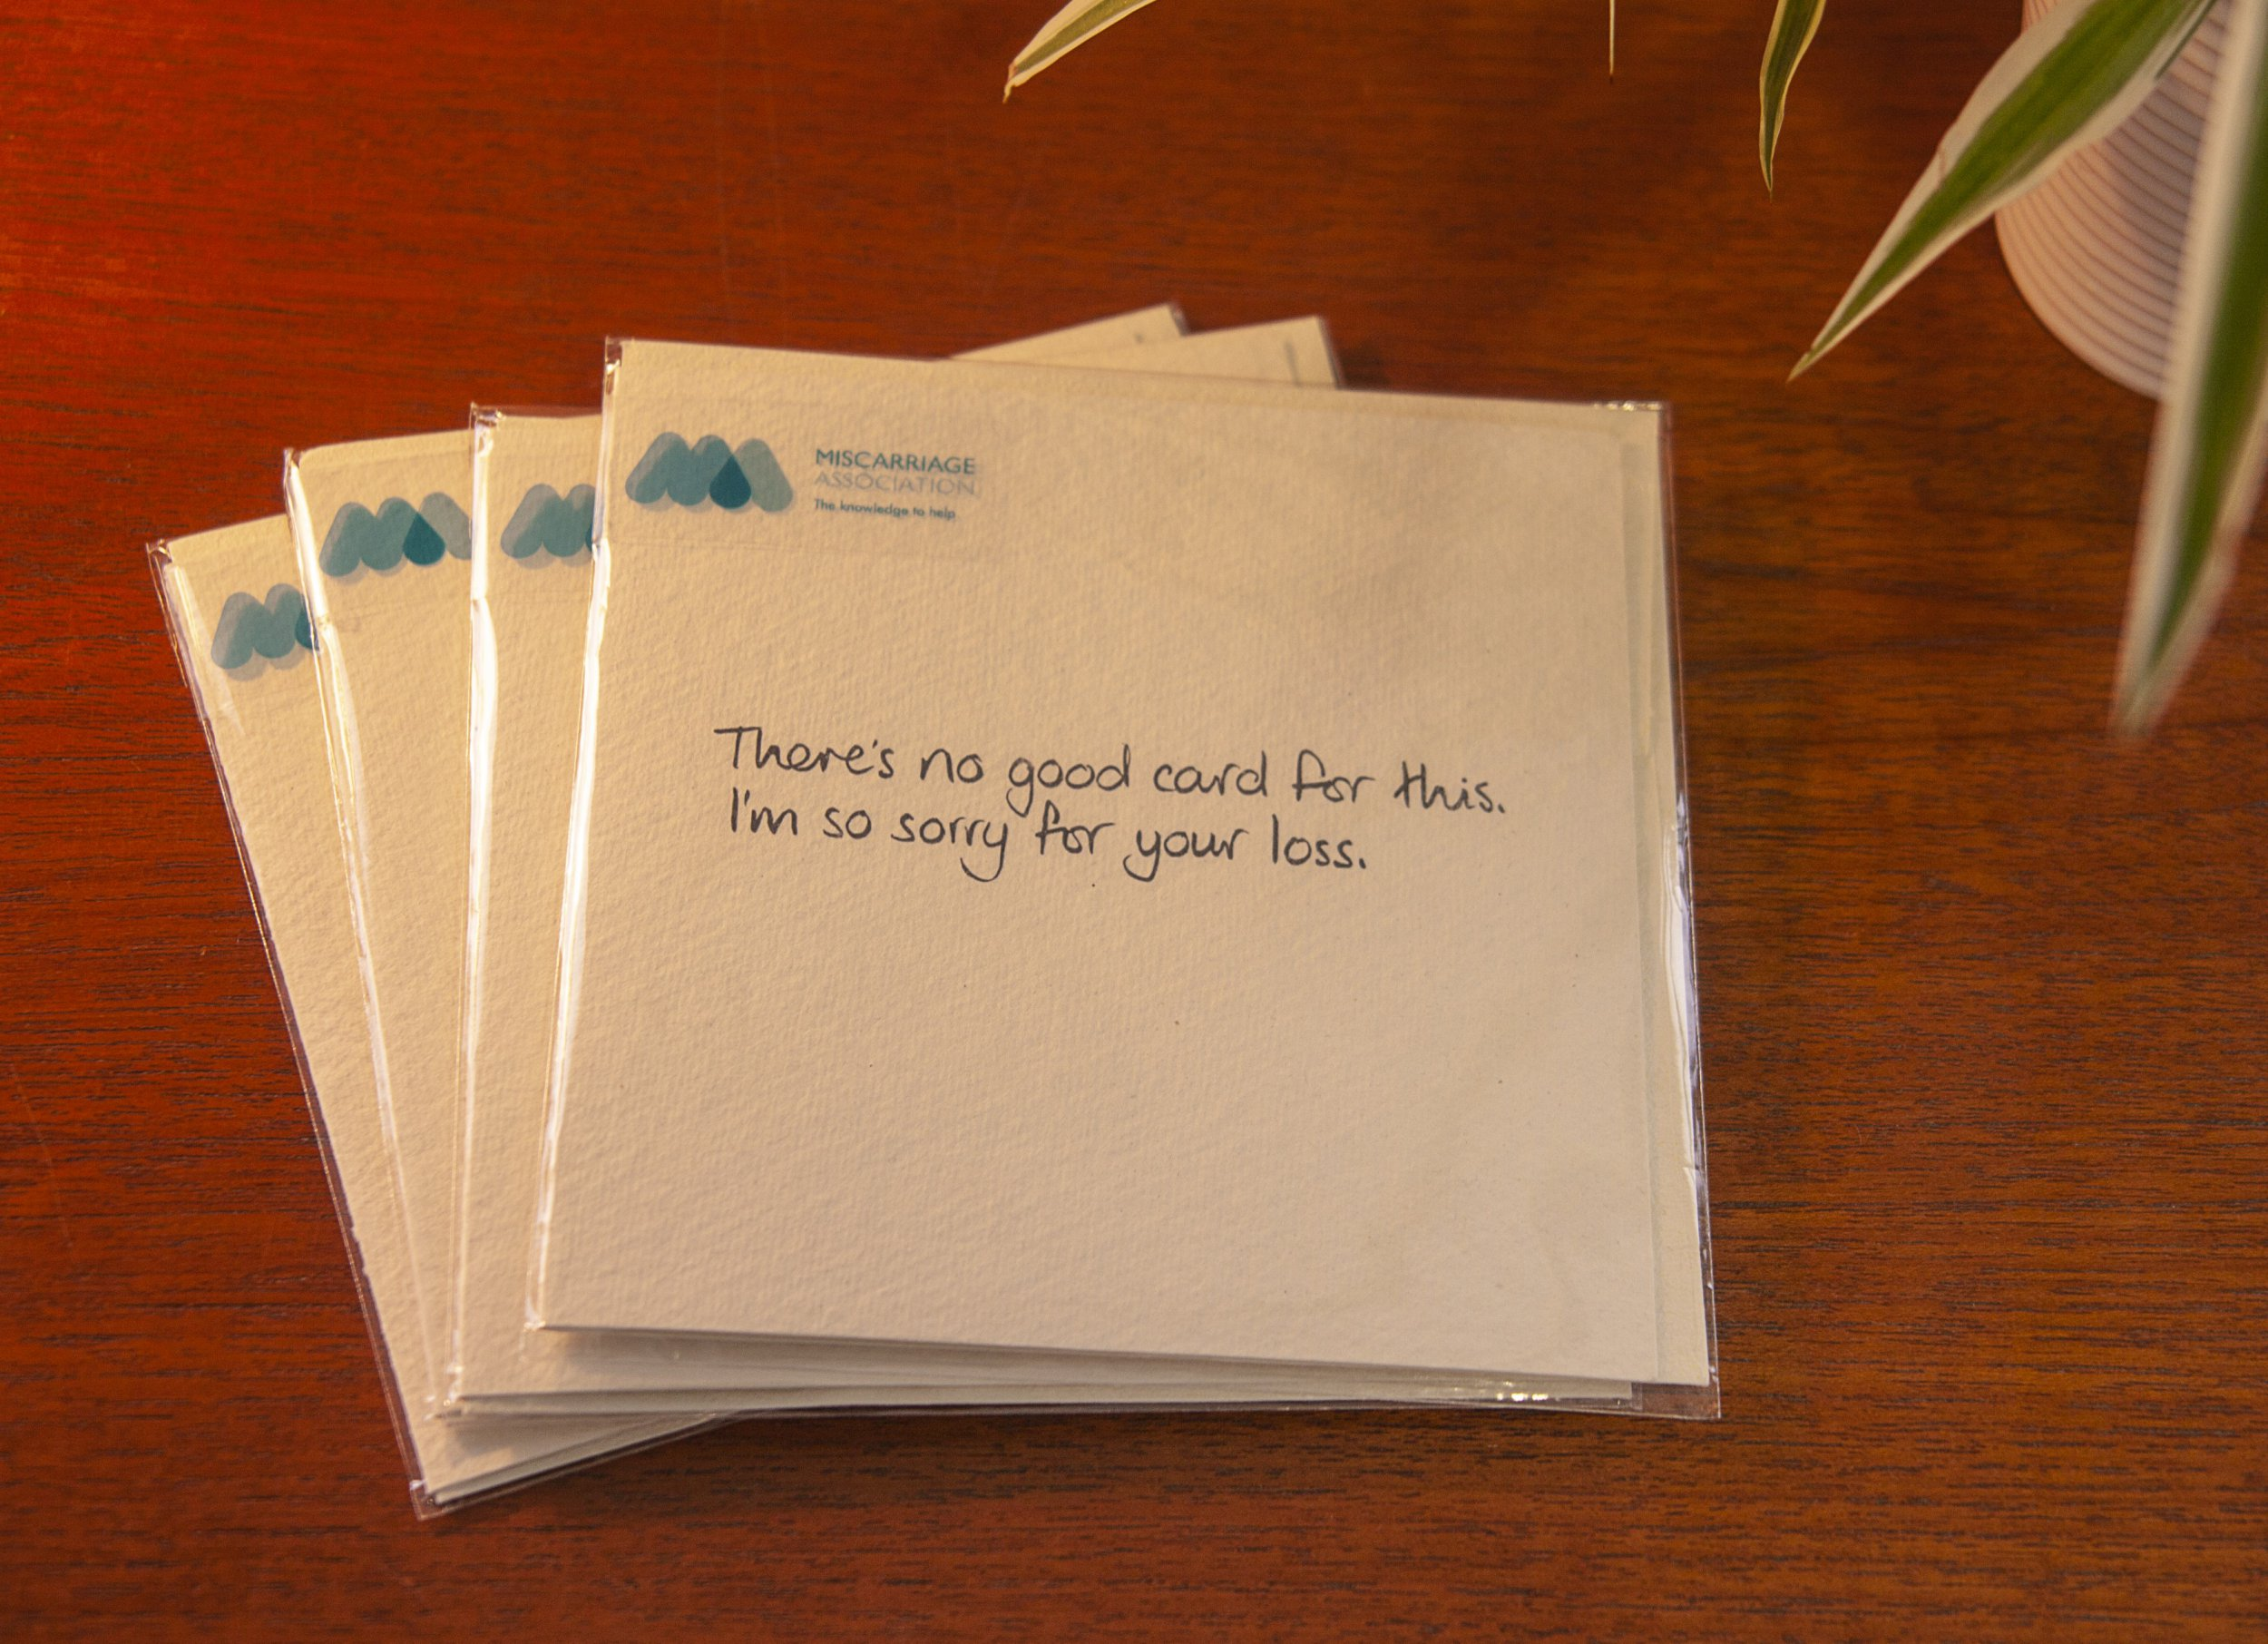 Miscarriage Association launches cards designed specifically for people who have lost babies